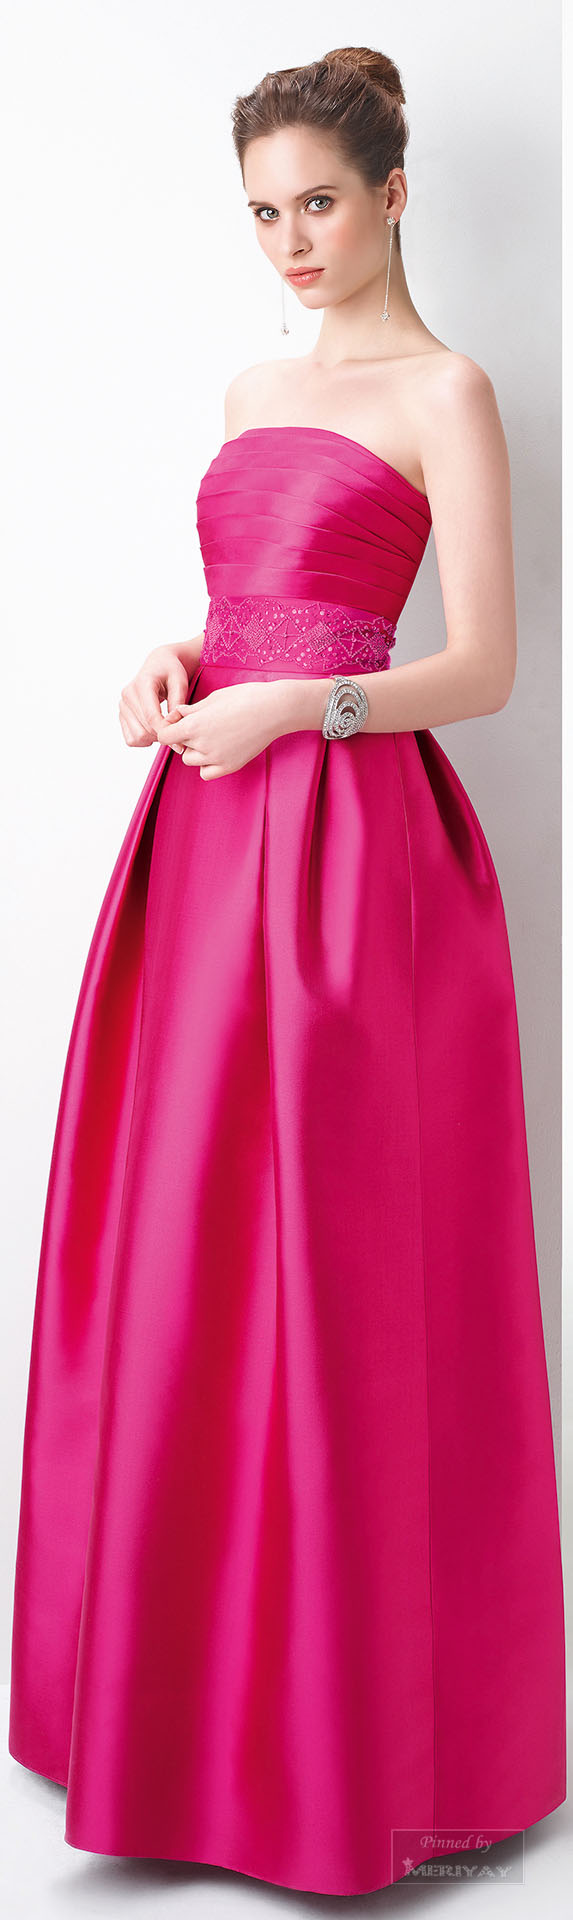 Glamour gown..Aire Barcelona.2015. jaglady | Pink/Electricity Neon ...